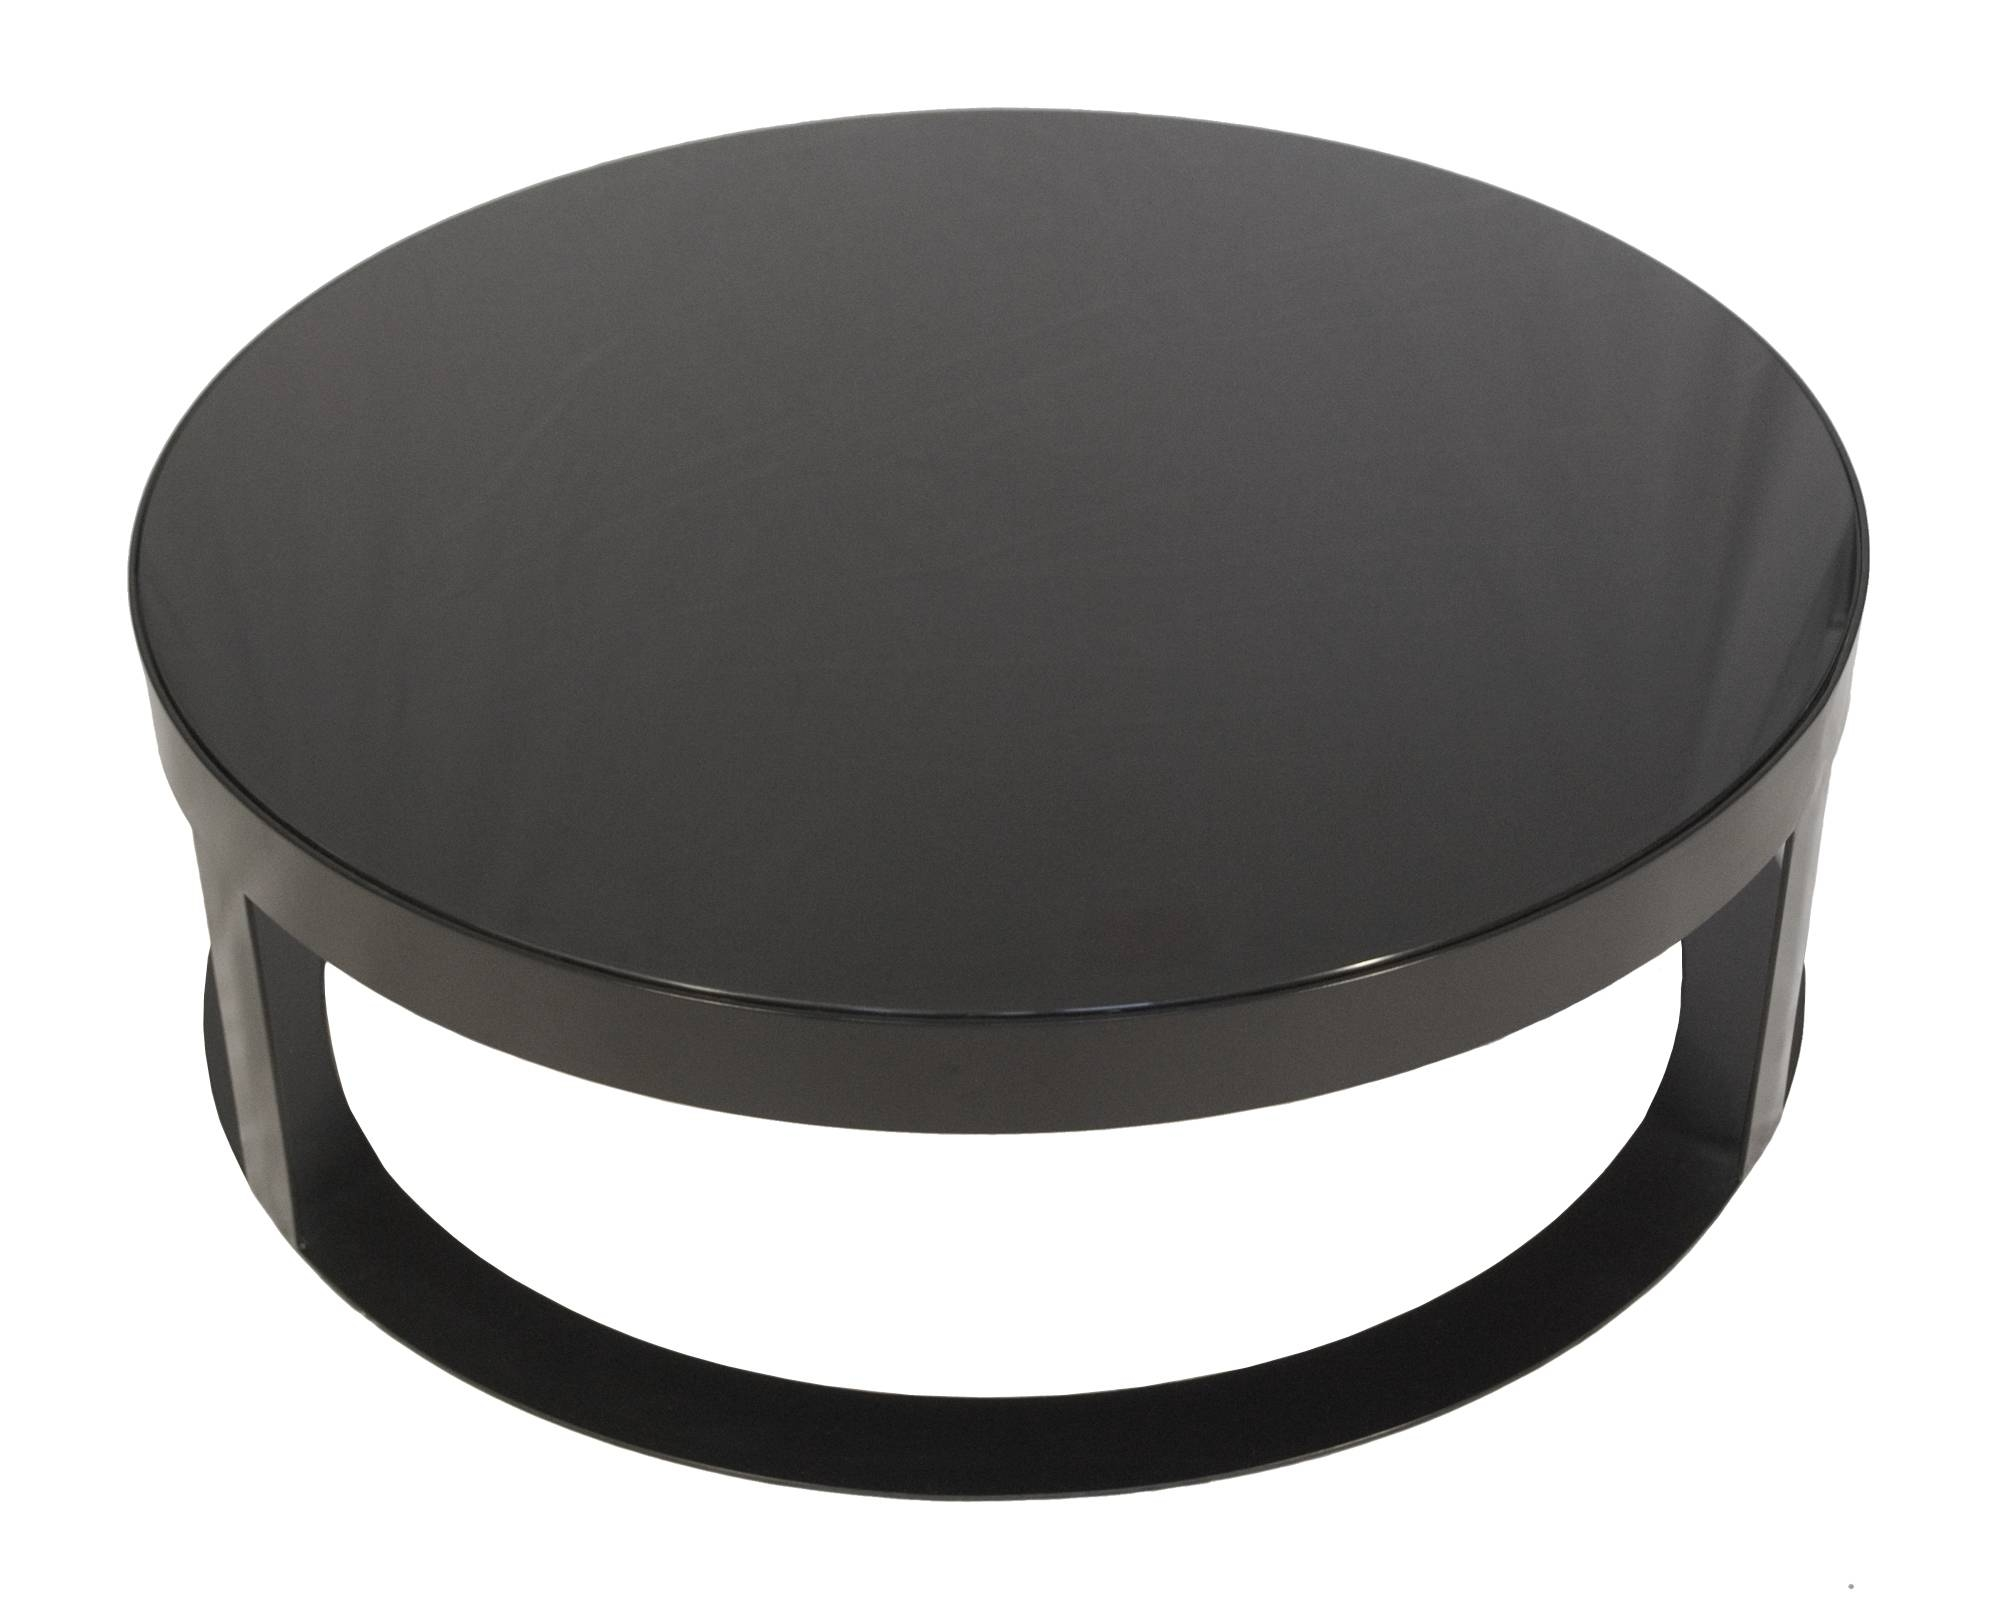 Glass And Black Metal Coffee Table - Jericho Mafjar Project with regard to Round High Gloss Coffee Tables (Image 13 of 30)